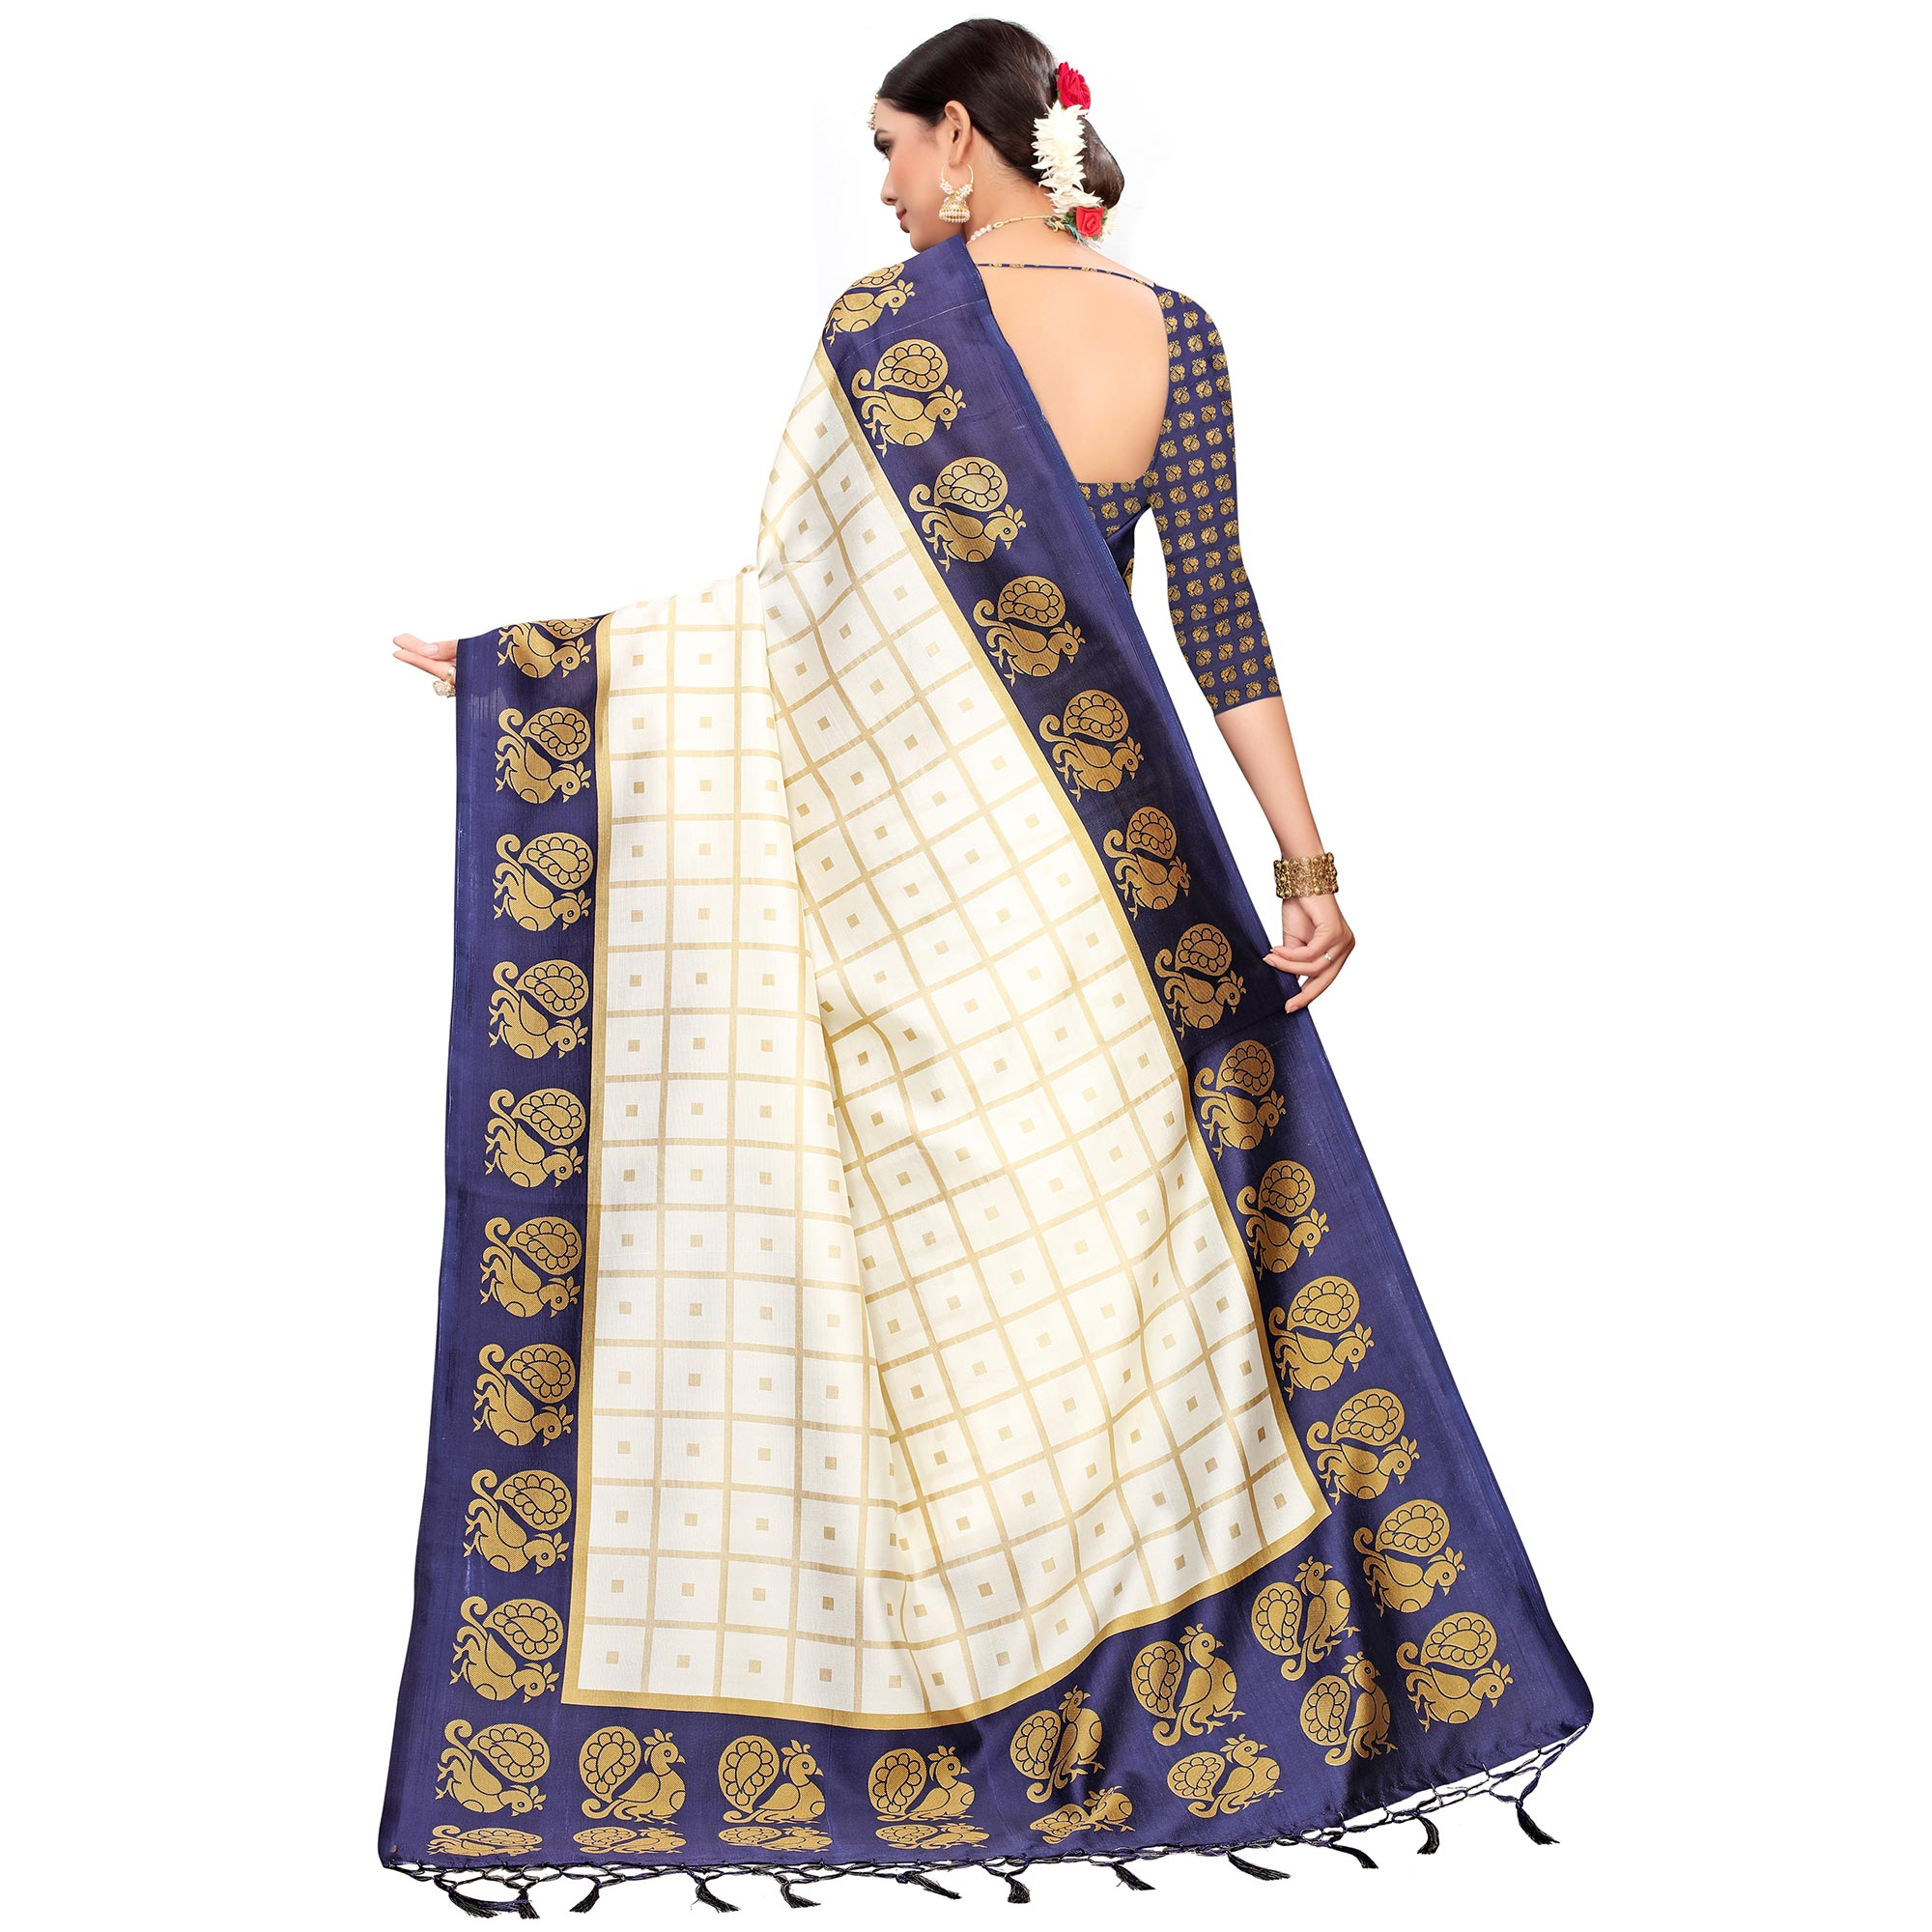 Marvellous Off White-Navy Blue Colored Festive Wear Printed Mysore Silk Saree